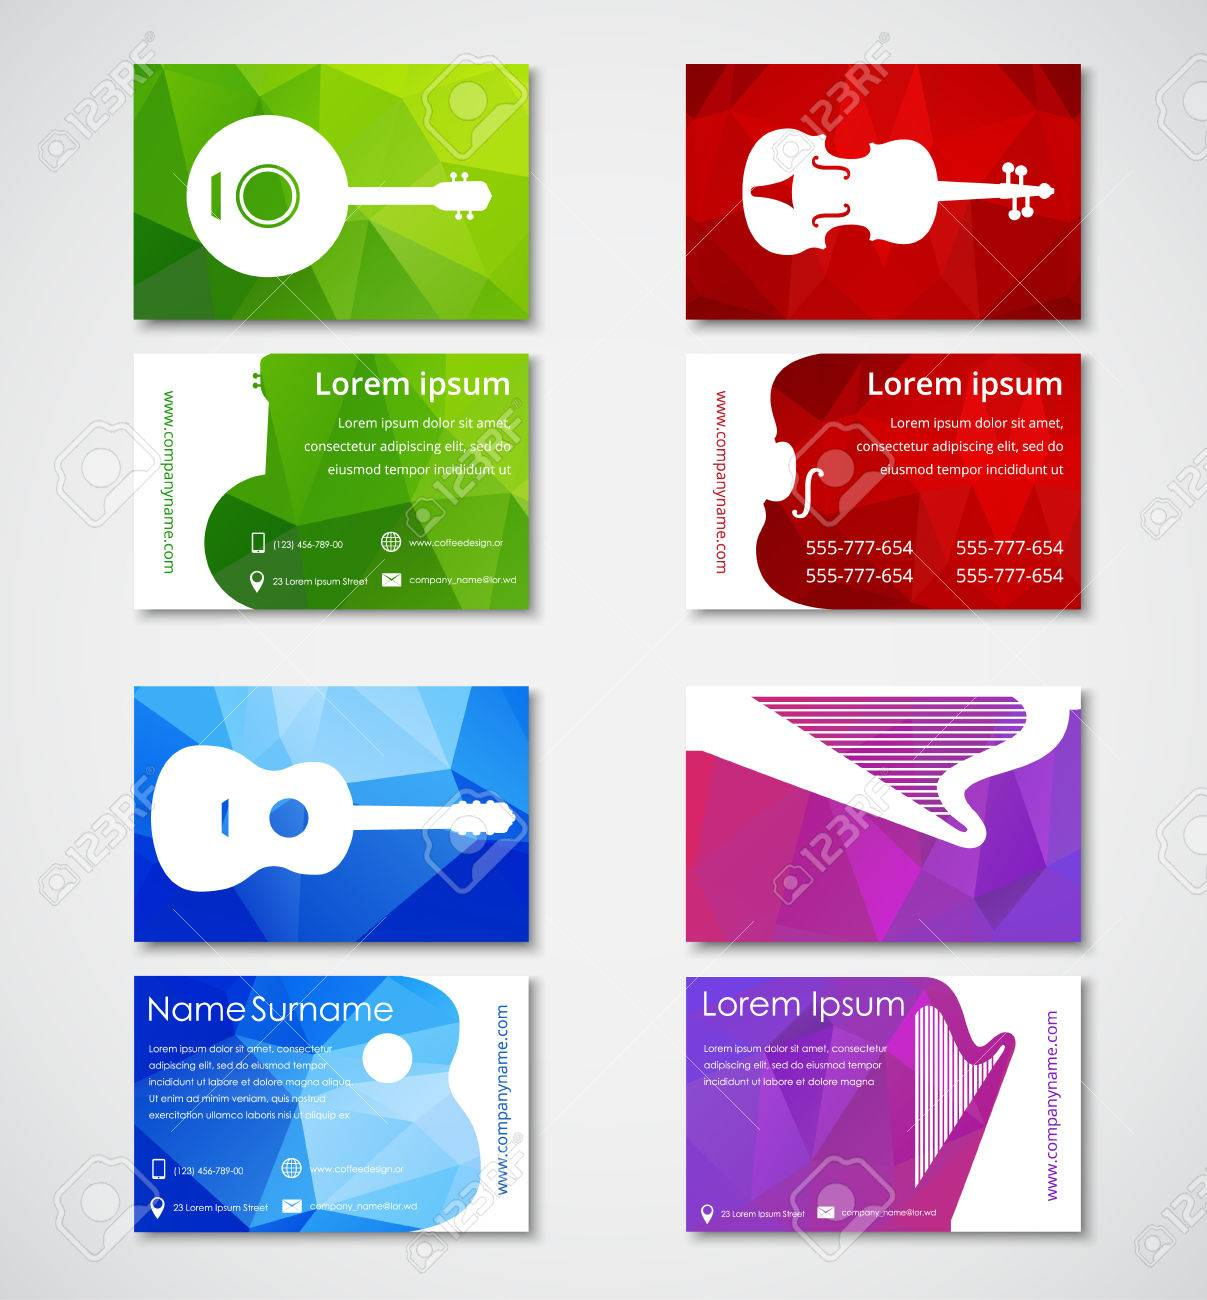 Design of business cards for musicians or music stores polygonal design of business cards for musicians or music stores polygonal colorful business card templates with colourmoves